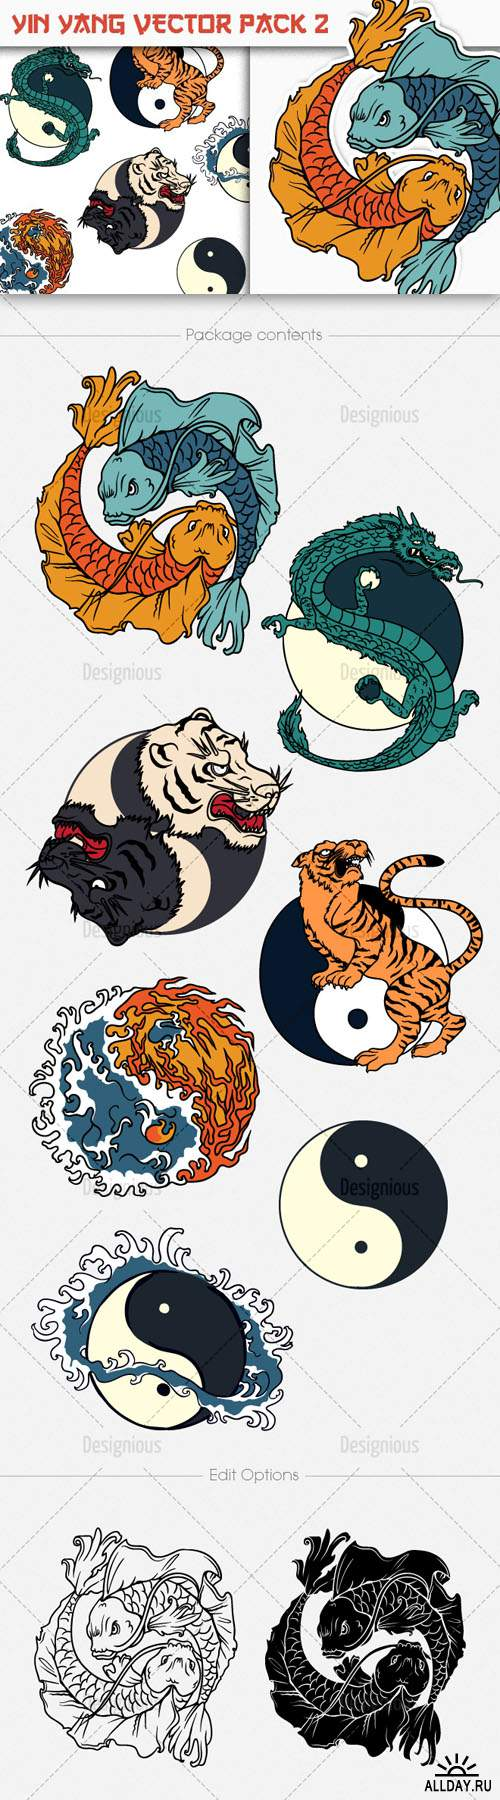 Yin Yang Photoshop Vector Pack 2